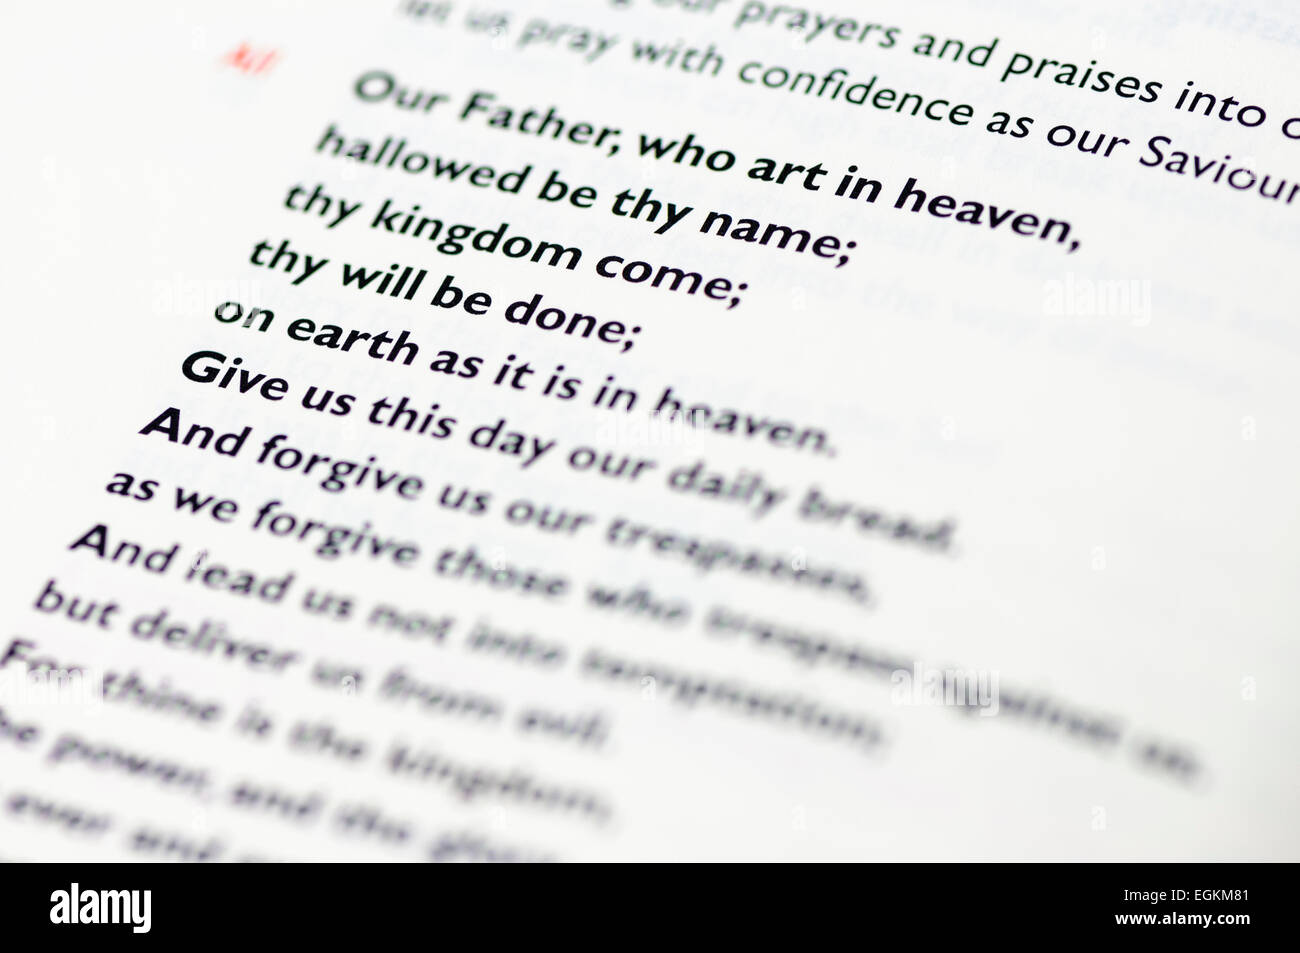 Lords Prayer Stock Photos Amp Lords Prayer Stock Images Alamy